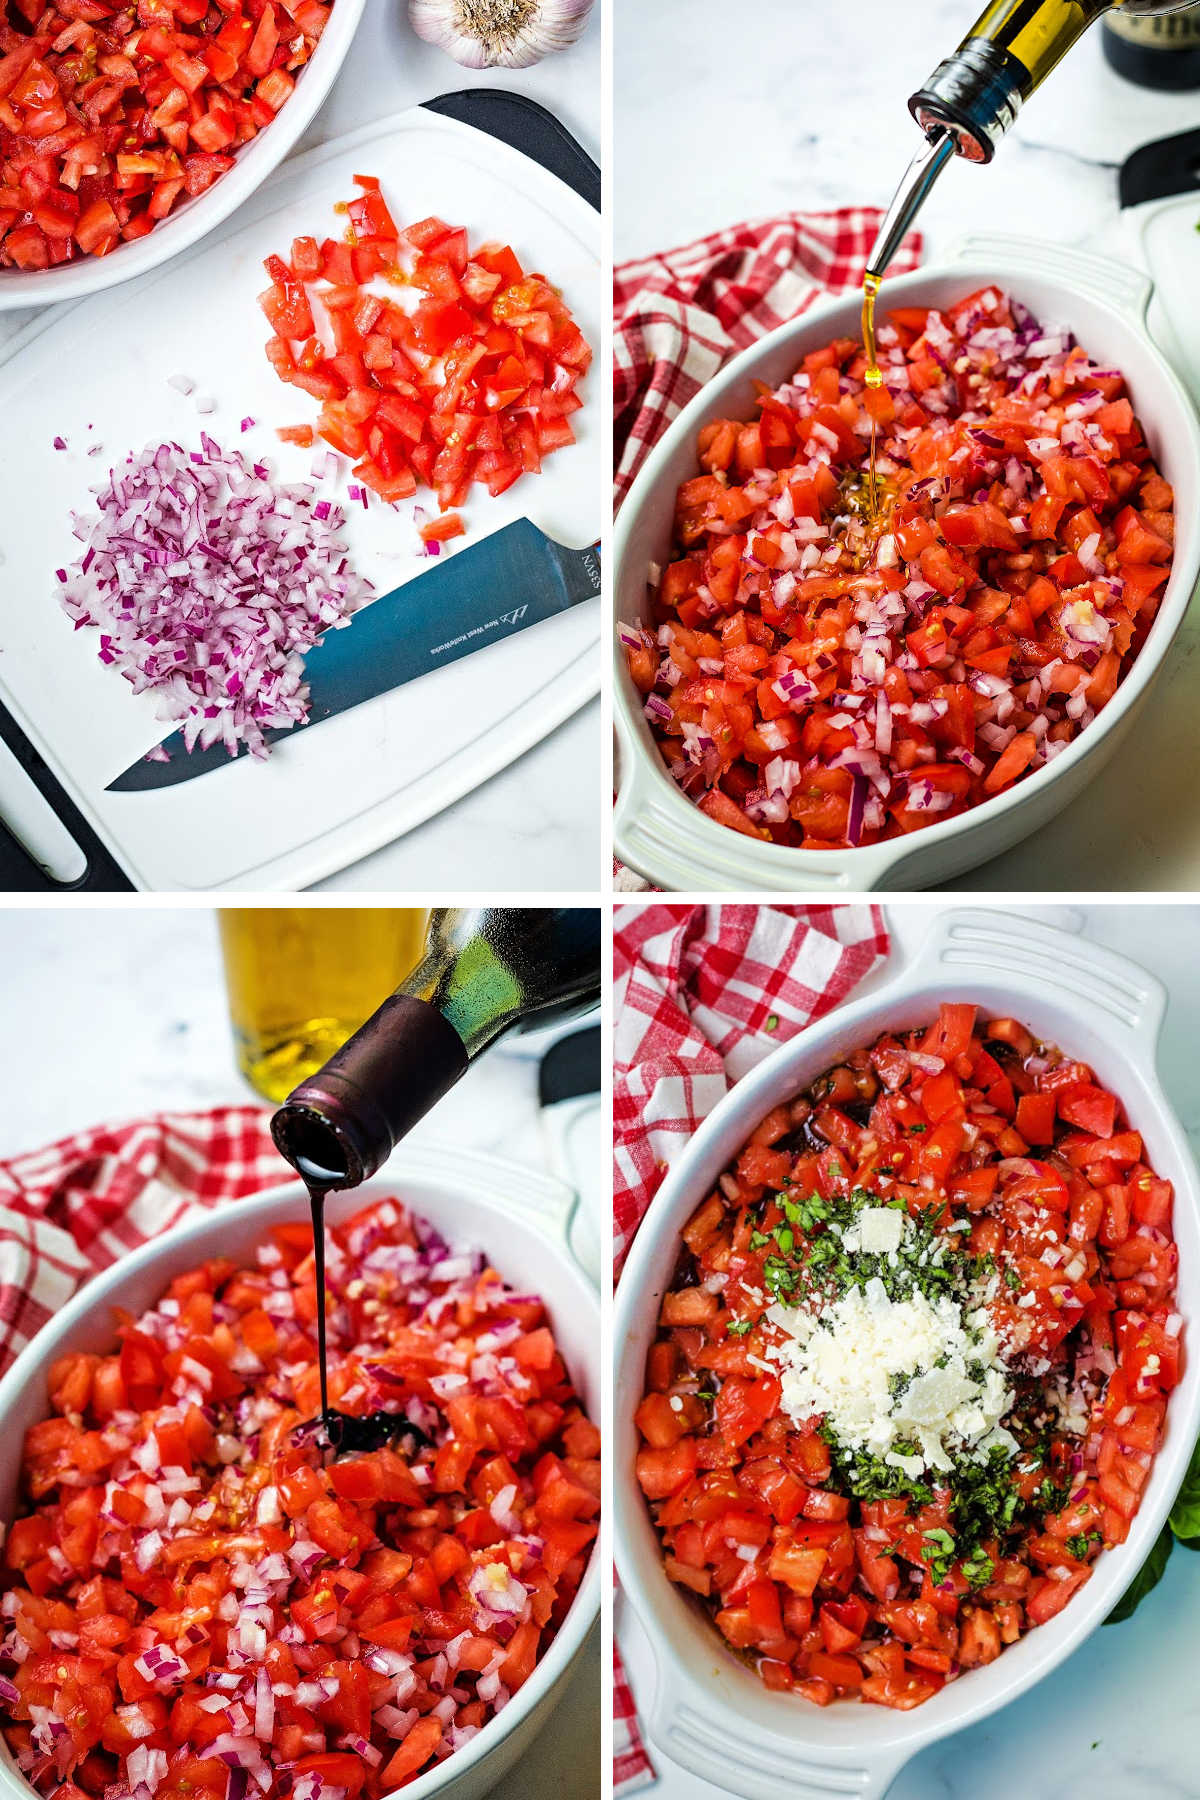 process steps for making bruschetta: dice tomatoes and red onions; add olive oil; add balsamic vinegar; add basil and parmesan cheese.